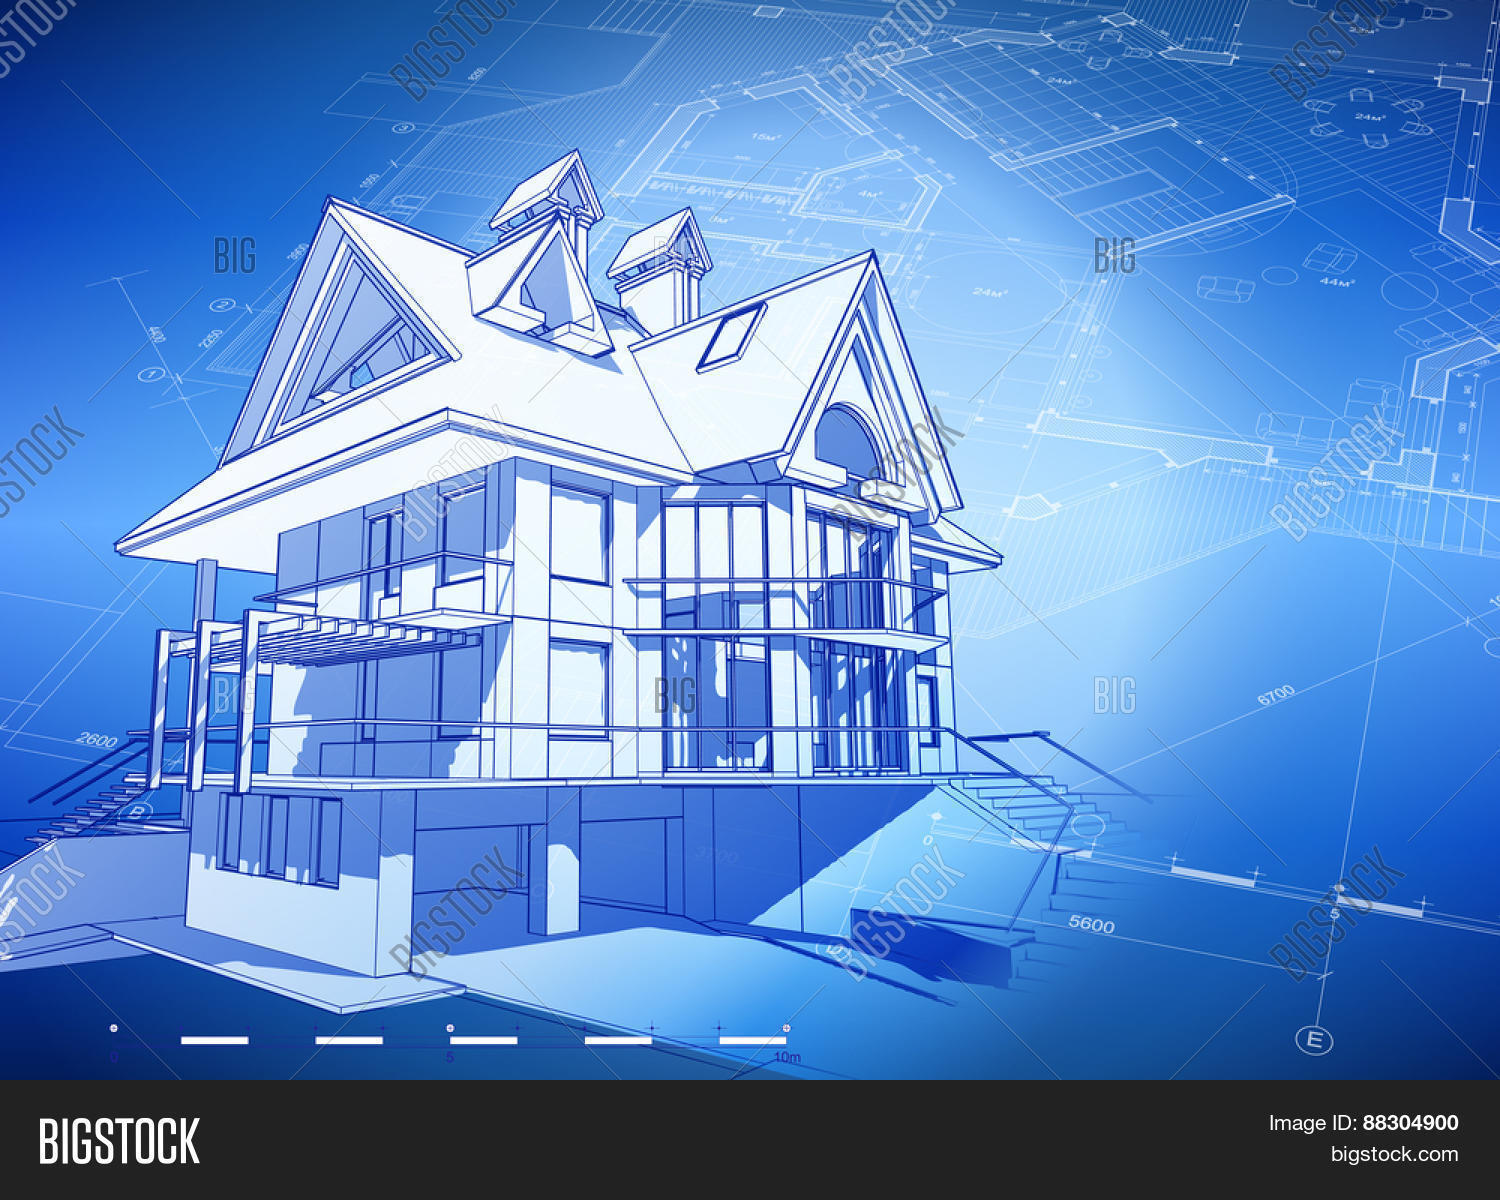 Architecture design blueprint 3d vector photo bigstock for Architecture blueprints